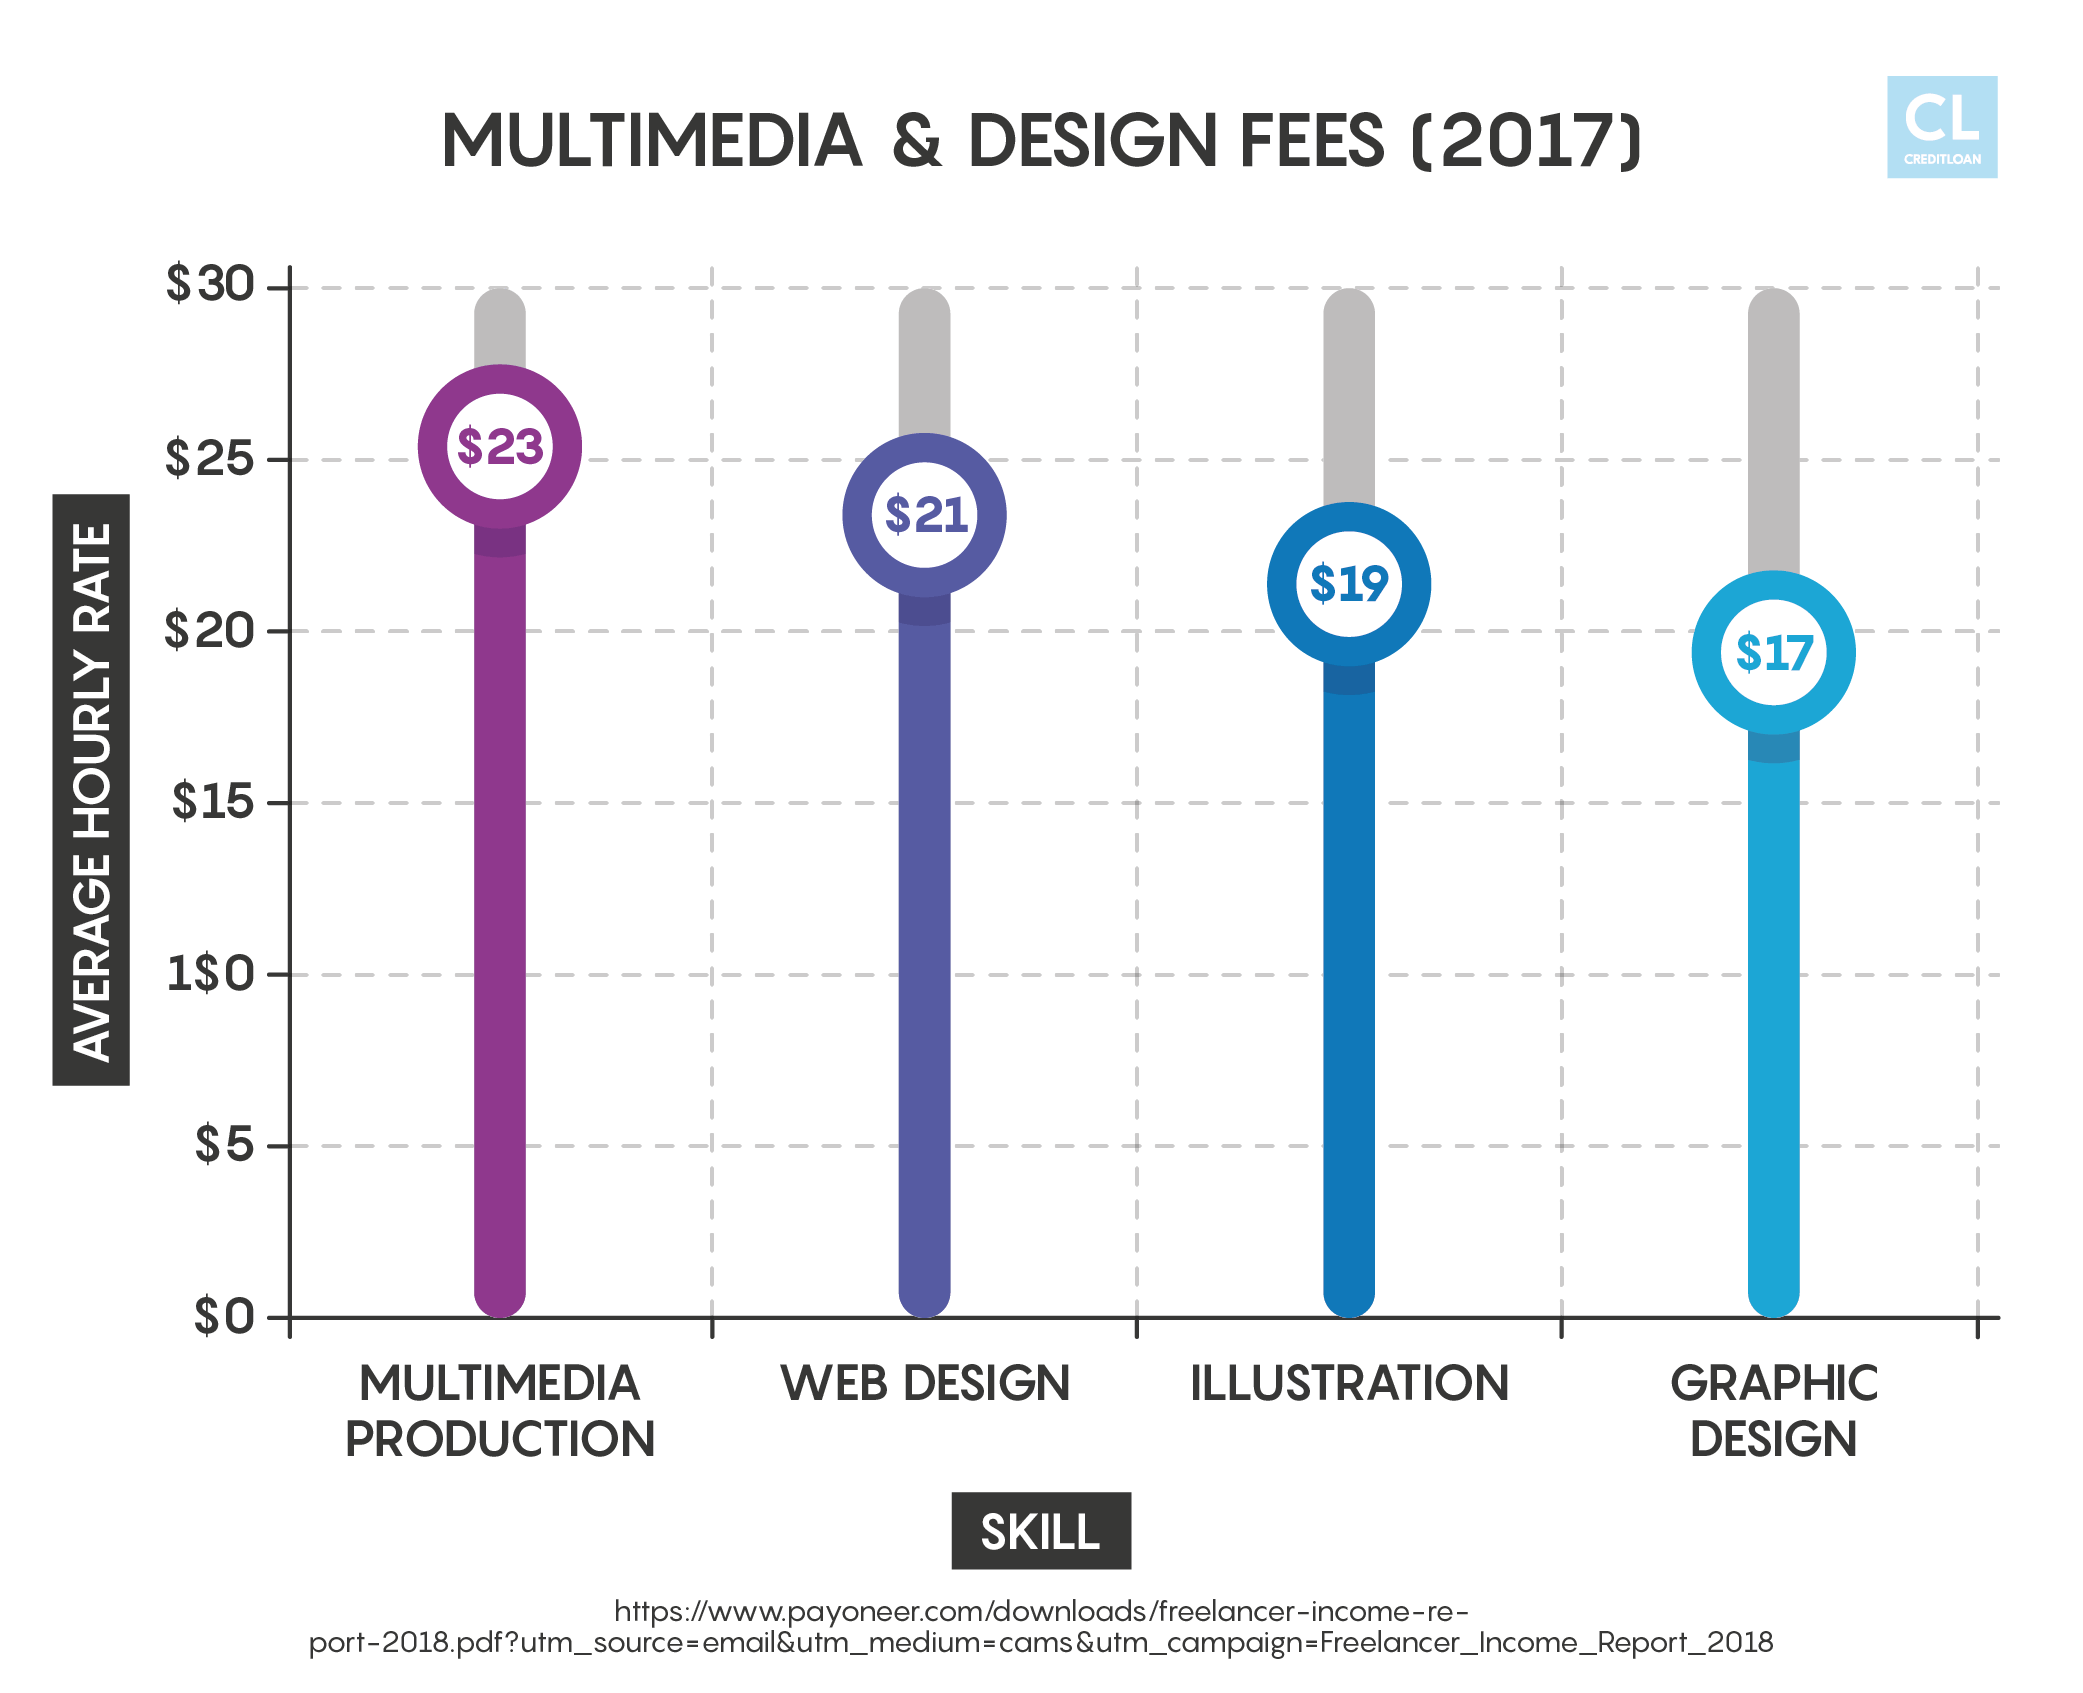 Design and Multimedia Fees